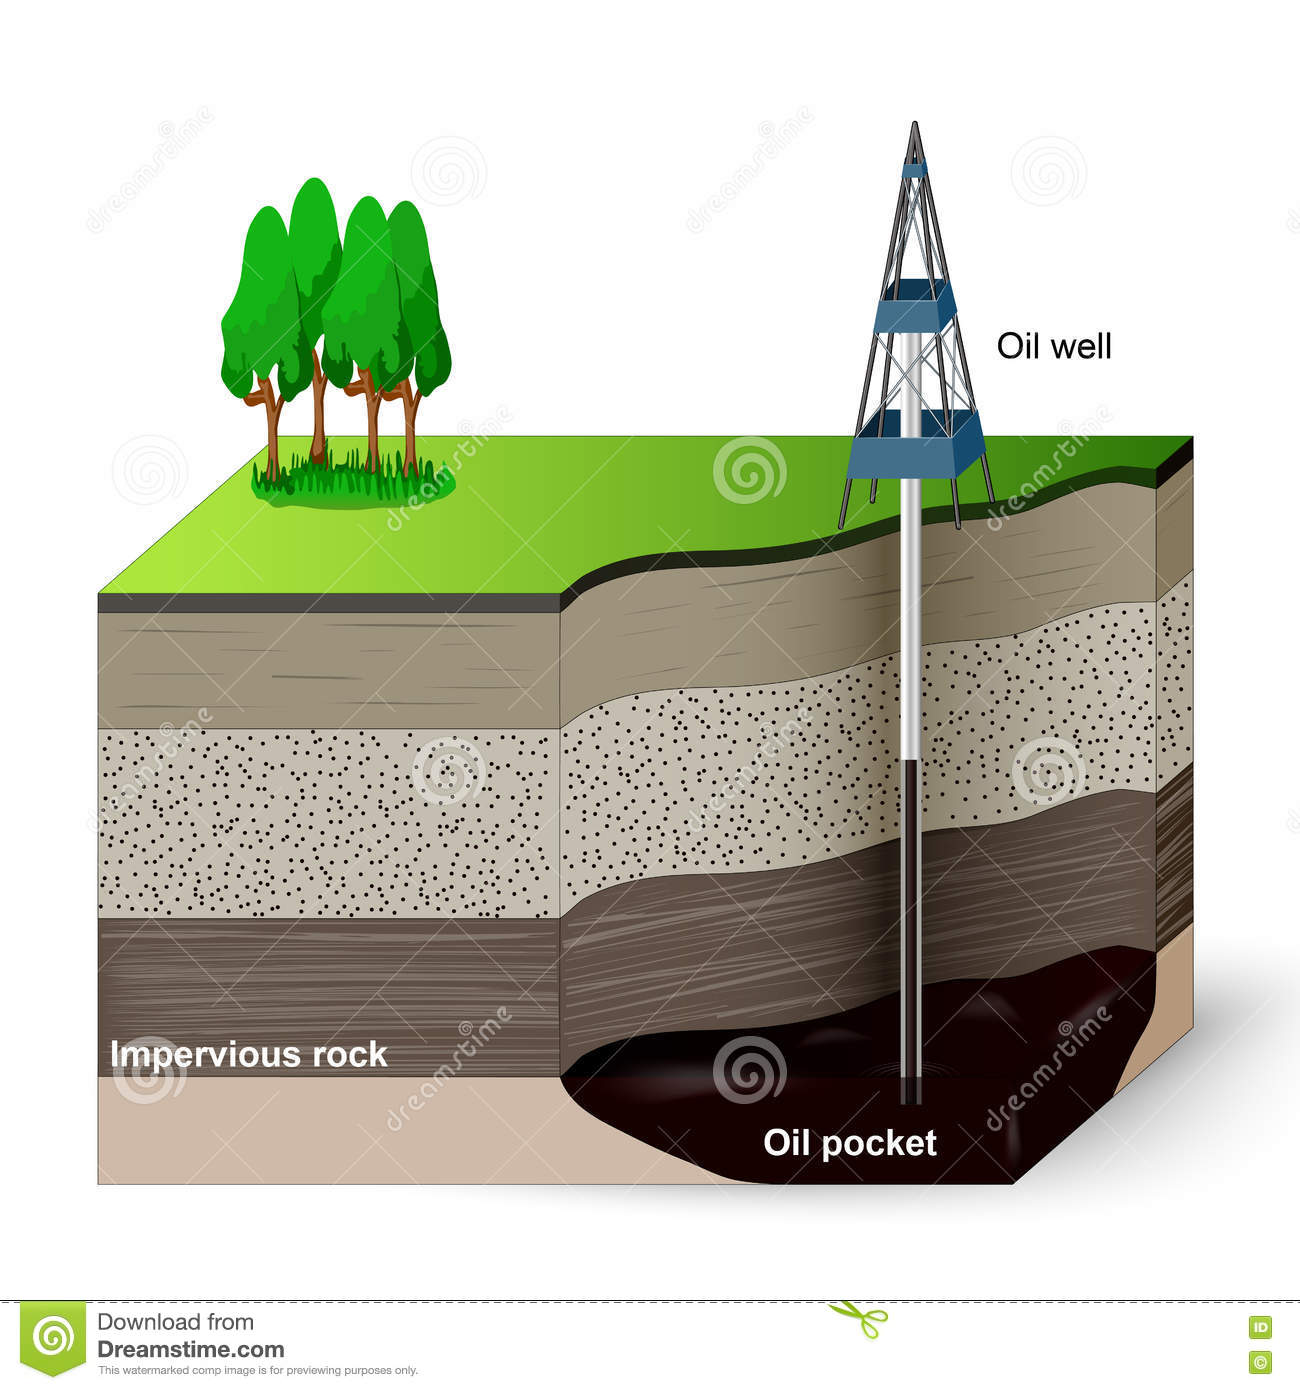 Natural Gas Prices >> Extraction of petroleum stock vector. Illustration of industrial - 75310877